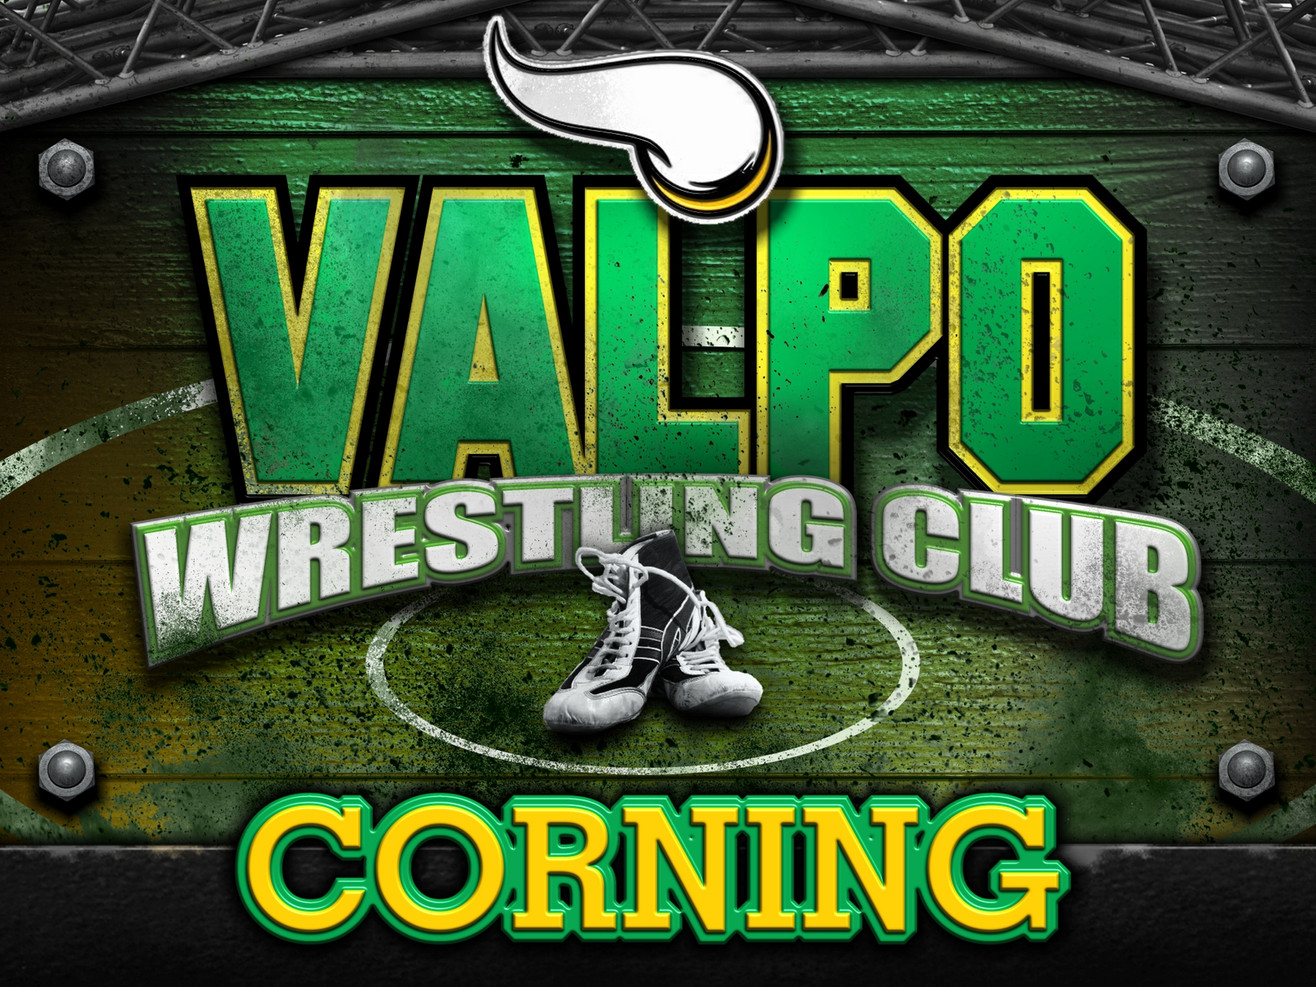 01-VALPO WRESTLING CLUB.jpg